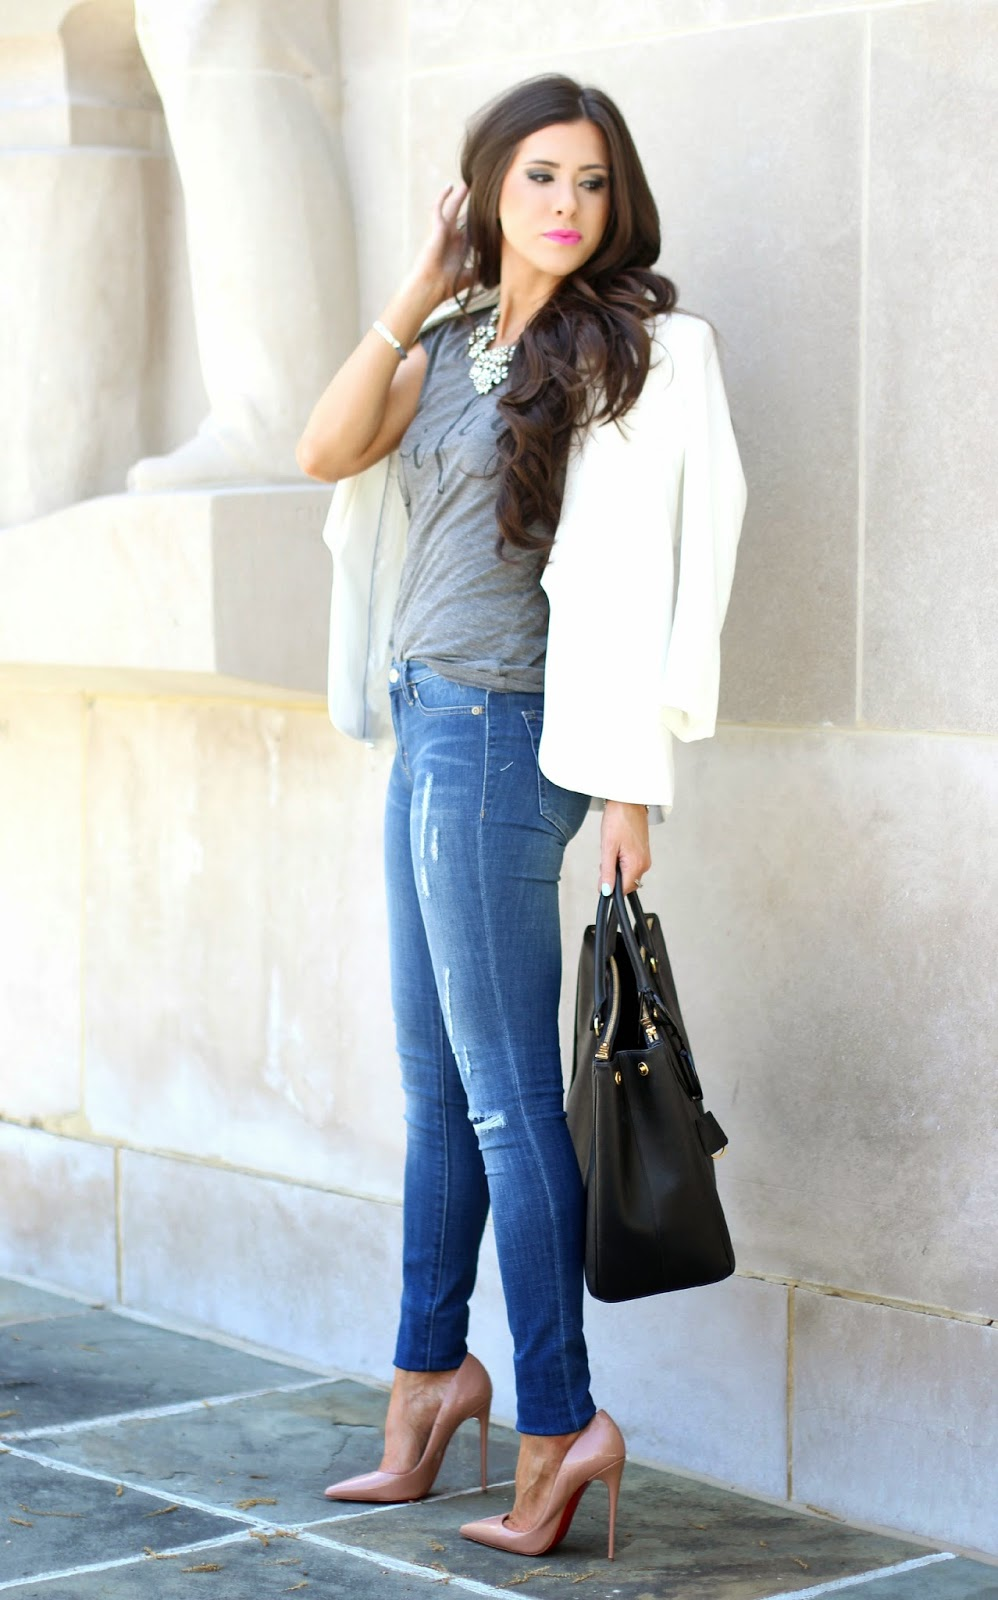 www.TheSweetestThingBlog.com, The Sweetest Thing, Emily Gemma, Emily Ann Gemma on Instagram, Emily Ann Gemma Pinterest, Wifey Tee Shirt, ILY couture Wifey Tee Shirt, How to style a gray tee, dittos skinny jeans, skinny jeans at nordstrom, christian louboutin heels, christian louboutin so kate 120mm, prada executive tote, prada bag in black large double zip, crystal flower necklace jcrew, white blazer, white blazer from nordstrom, white blazer from h&m, white boyfriend blazer, women's long white blazer, how to style a white blazer, how to wear nude pumps with jeans, nude pumps, pinterest summer fashion 2014, pinterest outfits for summer 2014, spring fashion 2014, style blogger, fashion blog with wifey tee